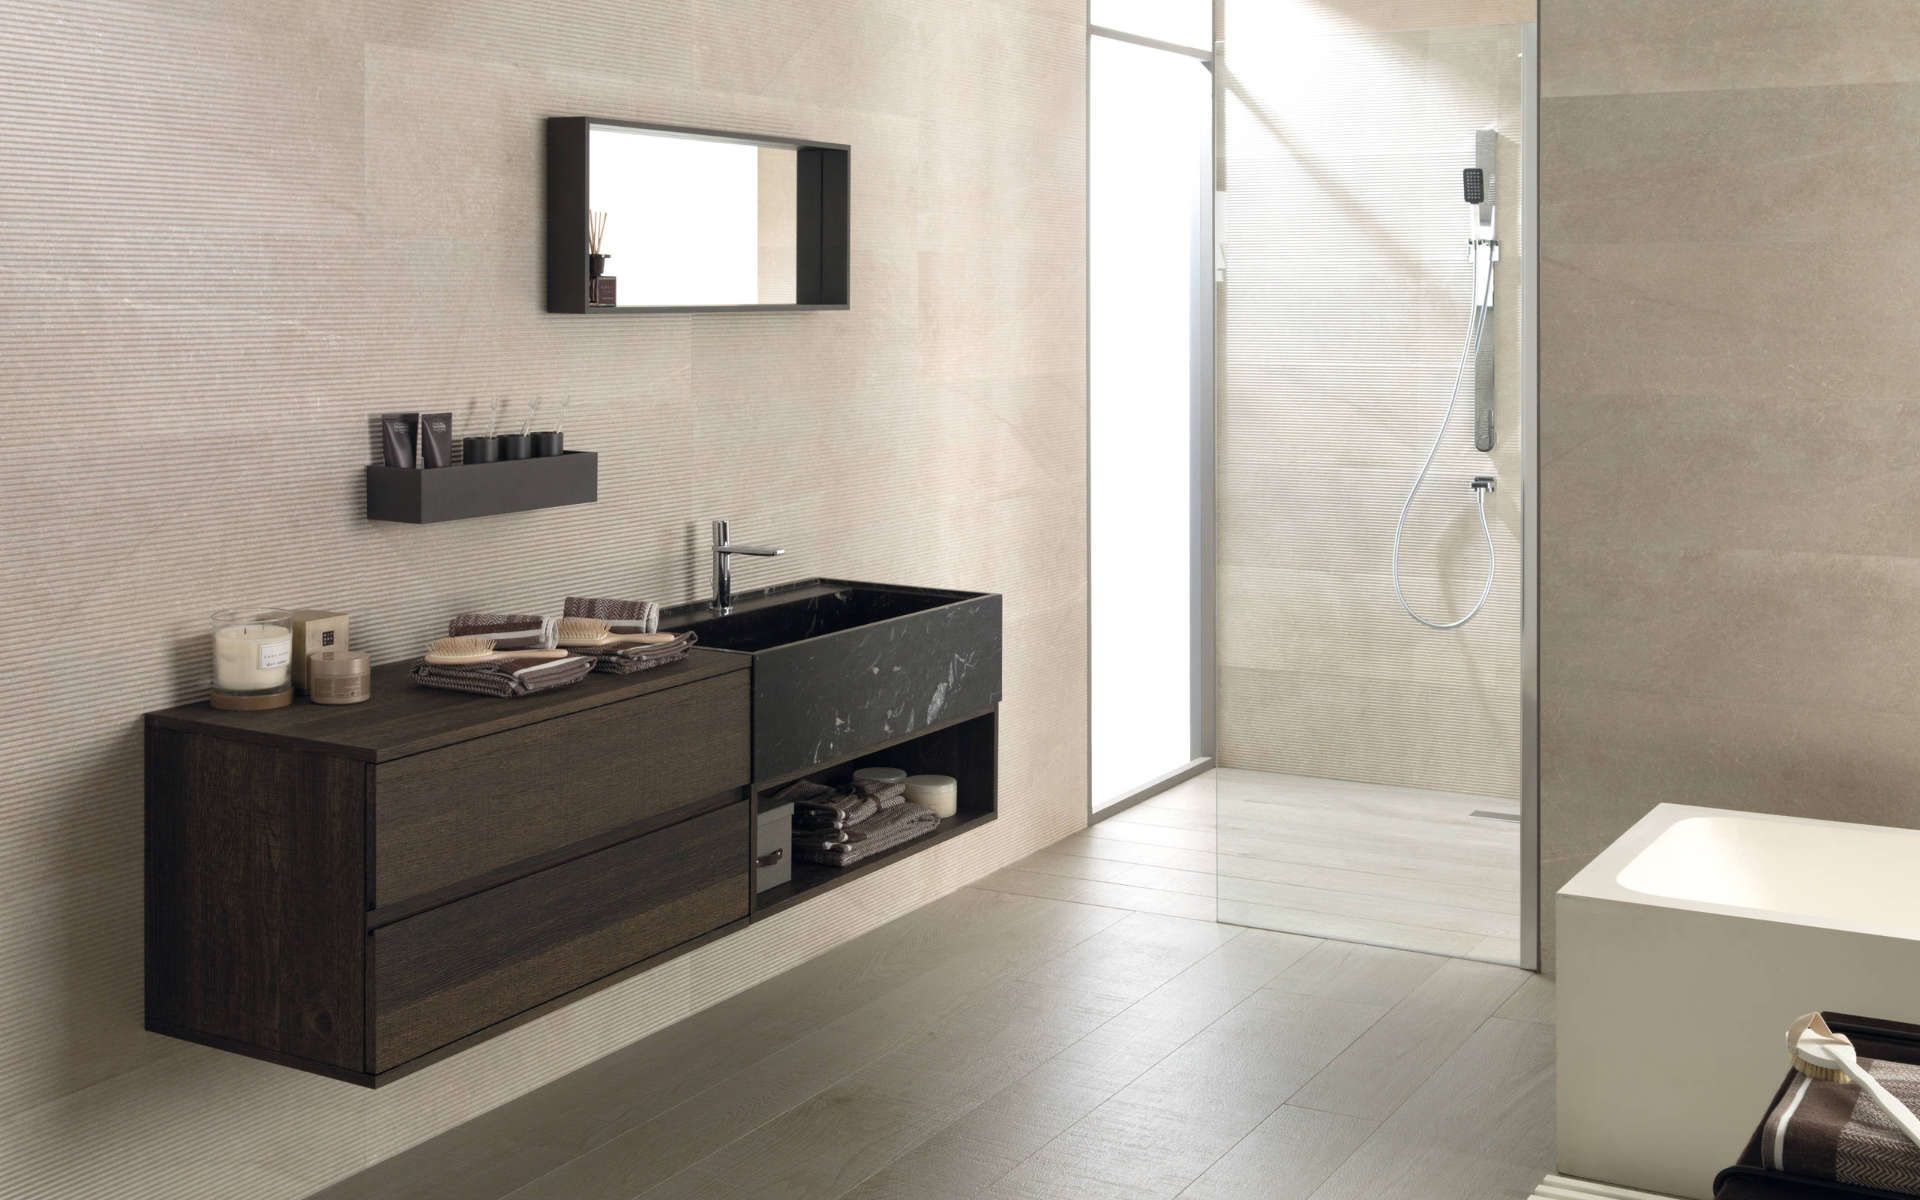 Bathroom Furniture Icon Roble Carbon Mobilier Salle De Bain Meuble Salle De Bain Idee Salle De Bain